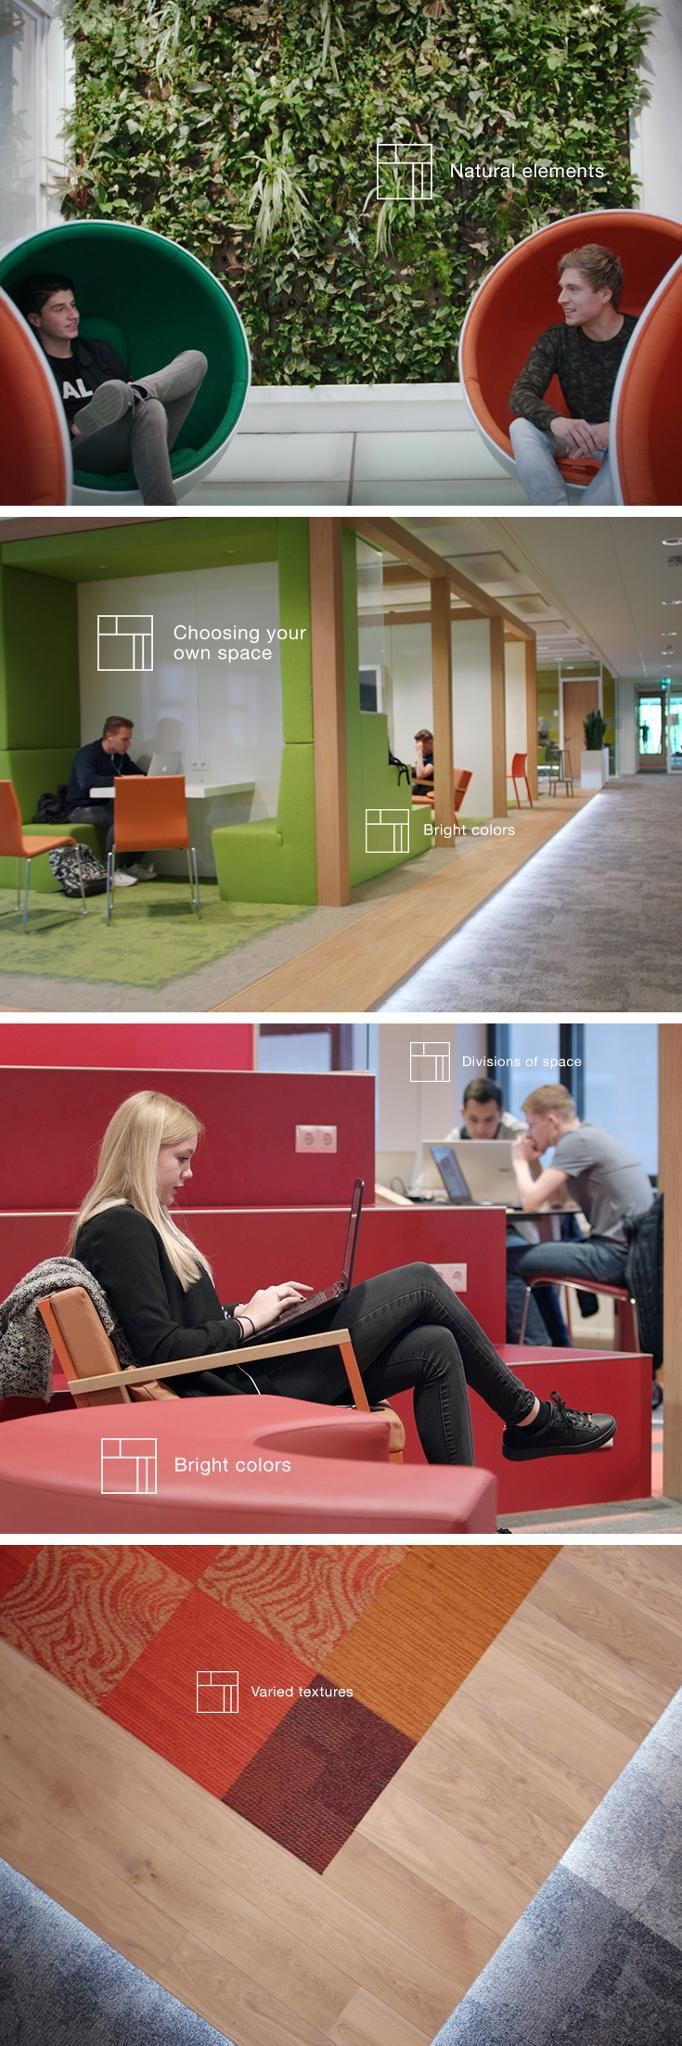 Inside Avans University, you'll spot spaces that support students and teachers alike. These #PositiveSpaces feature biophilic design to improve well-being and concentration, flexible environments for more choice, bright colors that spark inspiration and varied textures that create balance and versatility. From thoughtful floor design to unique accents, this education design paves the way to positive learning.